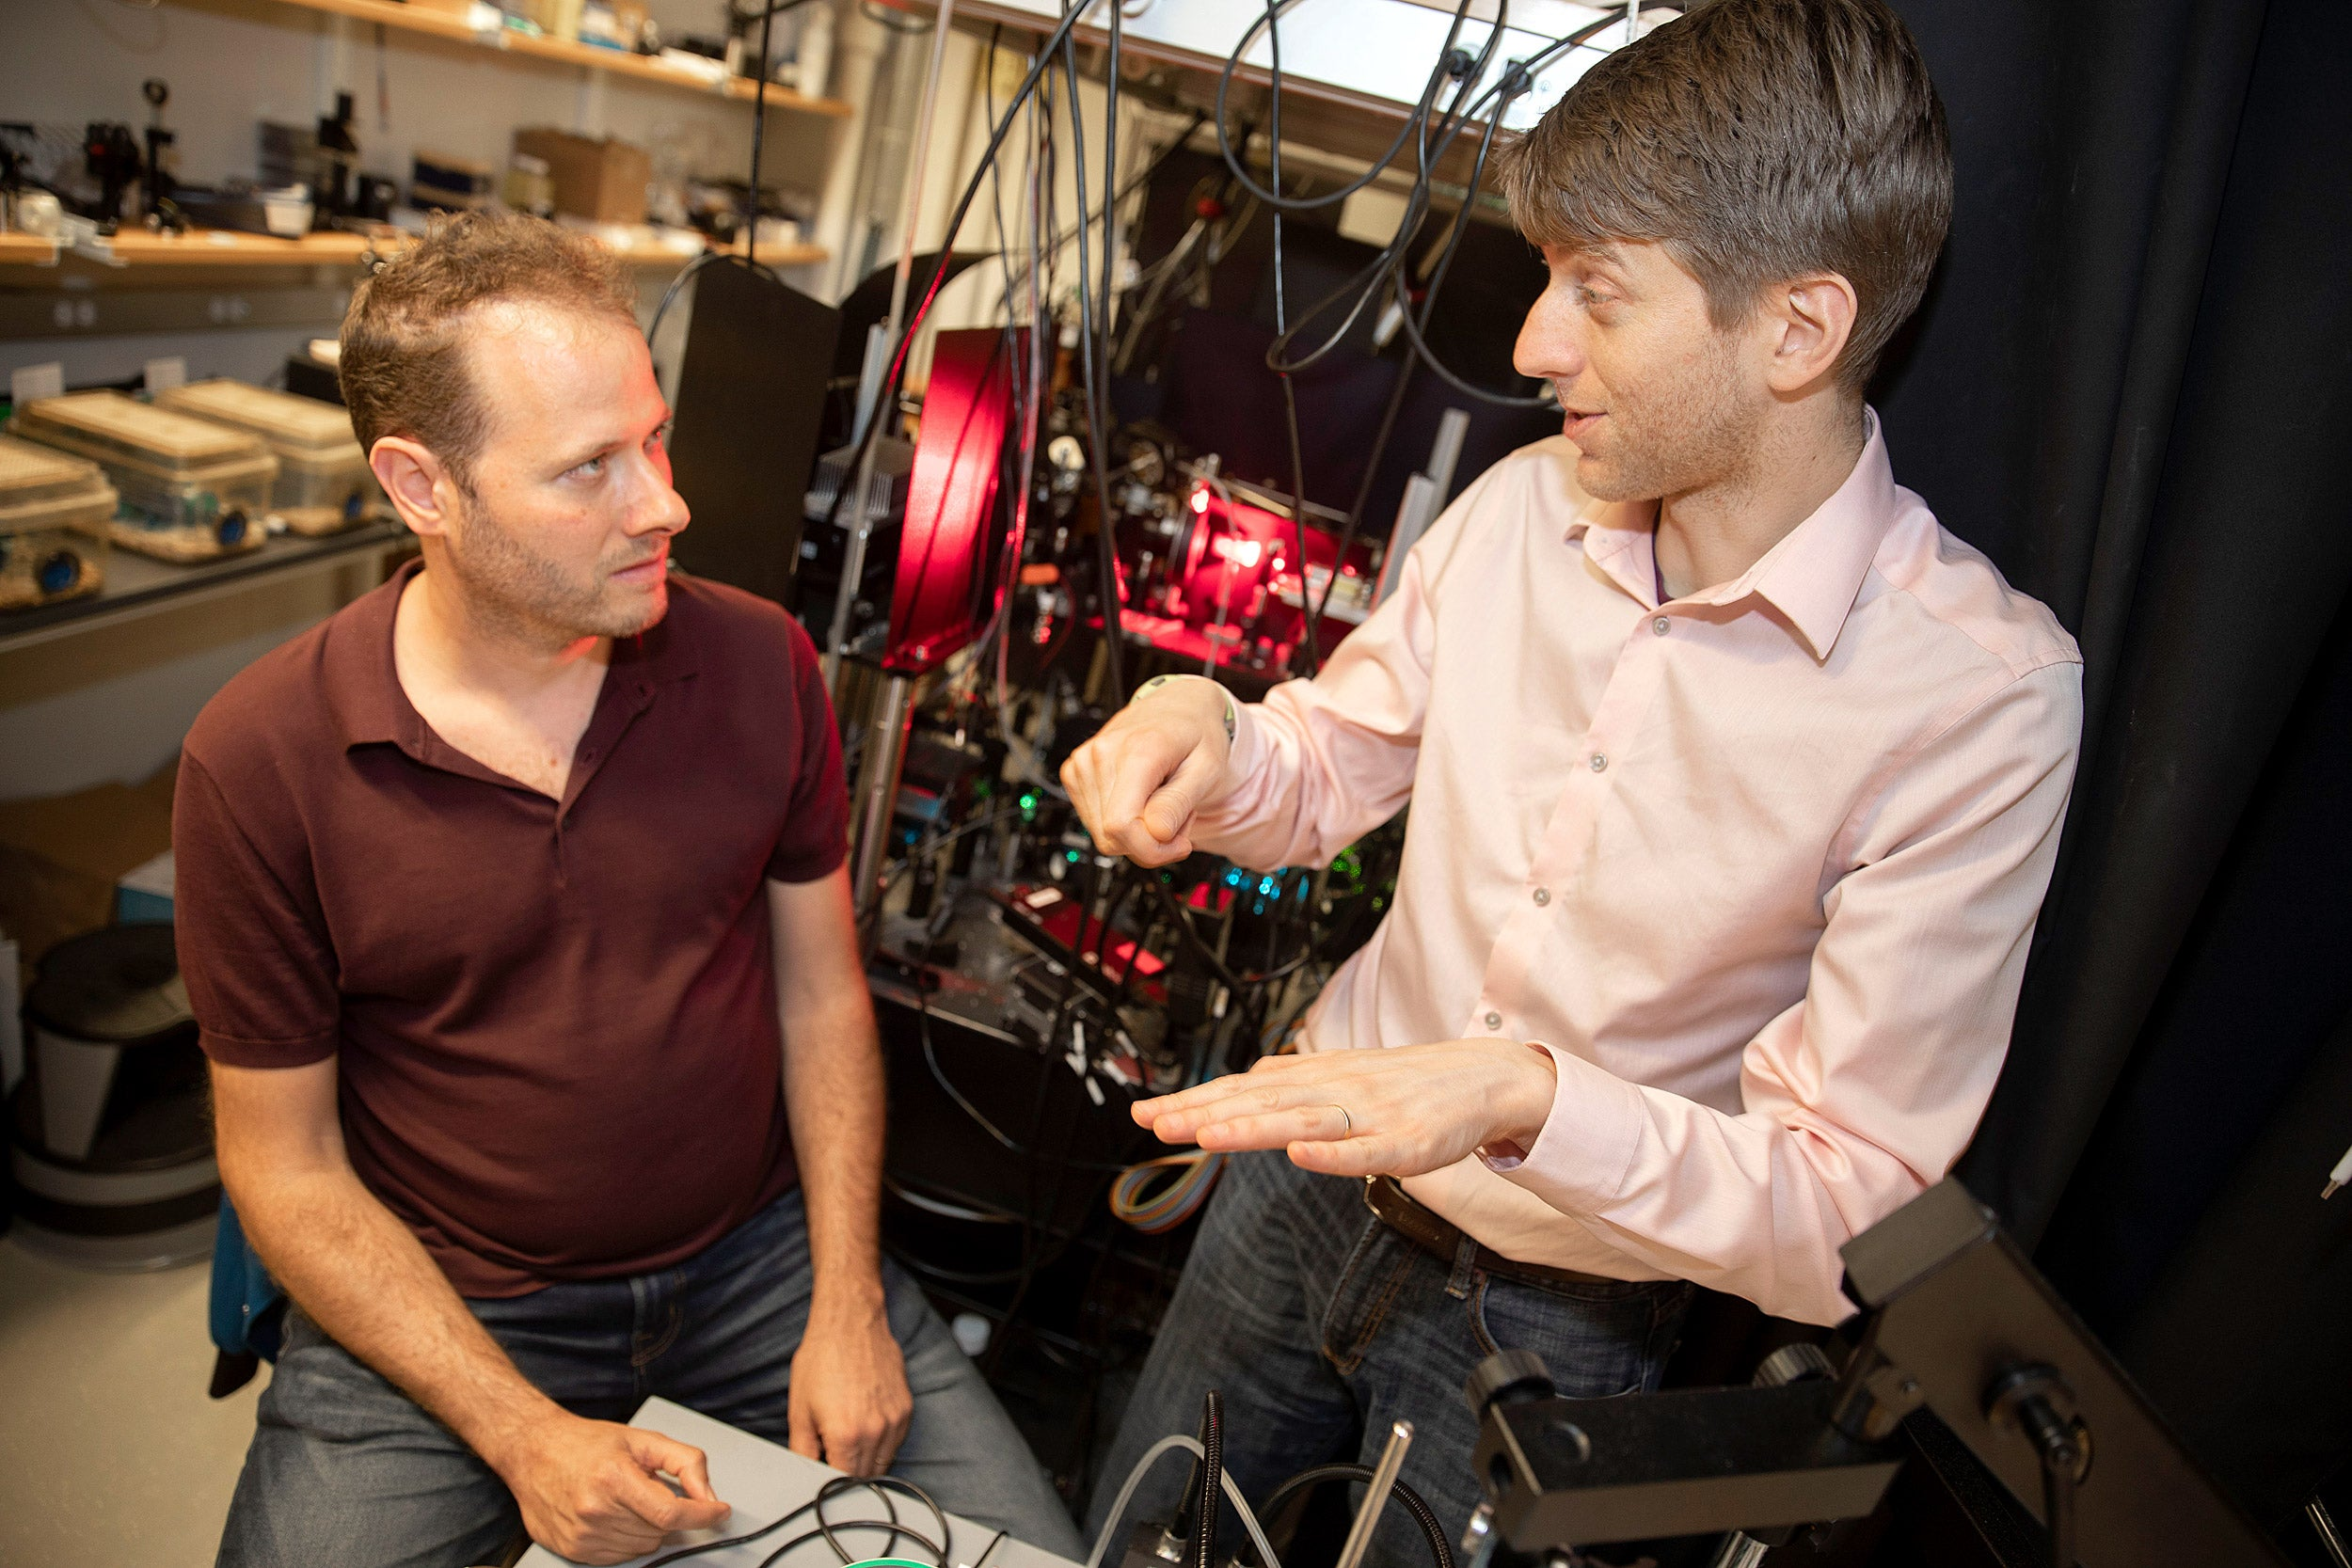 Adam Cohen and Yoav Adam discuss their findings in Mallinckrodt Lab.